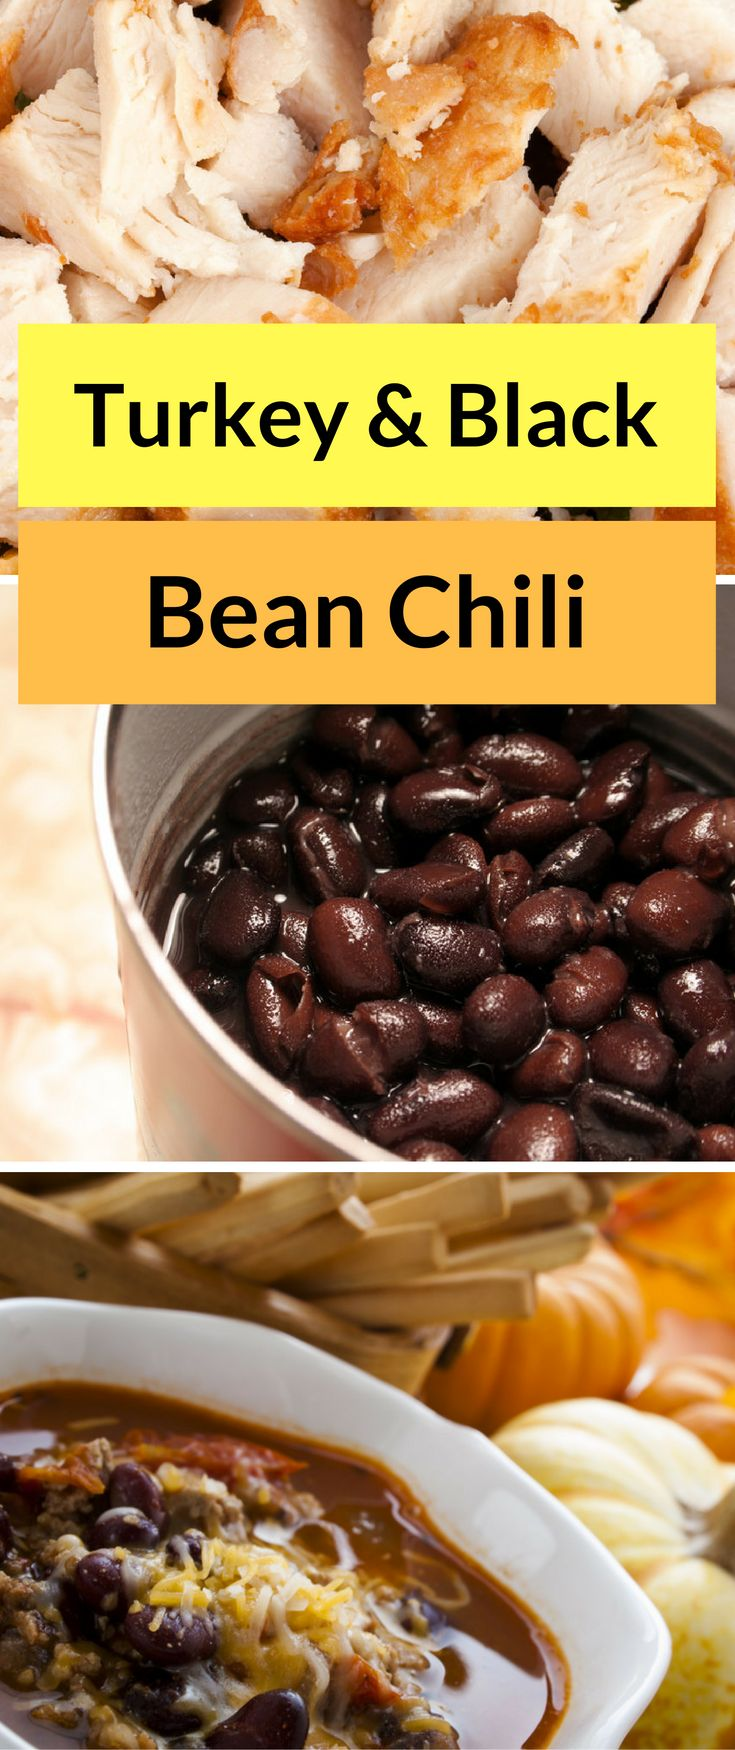 Looking for something to do with left-over turkey from Thanksgiving? Check out this Turkey and Black Bean Chili recipe.